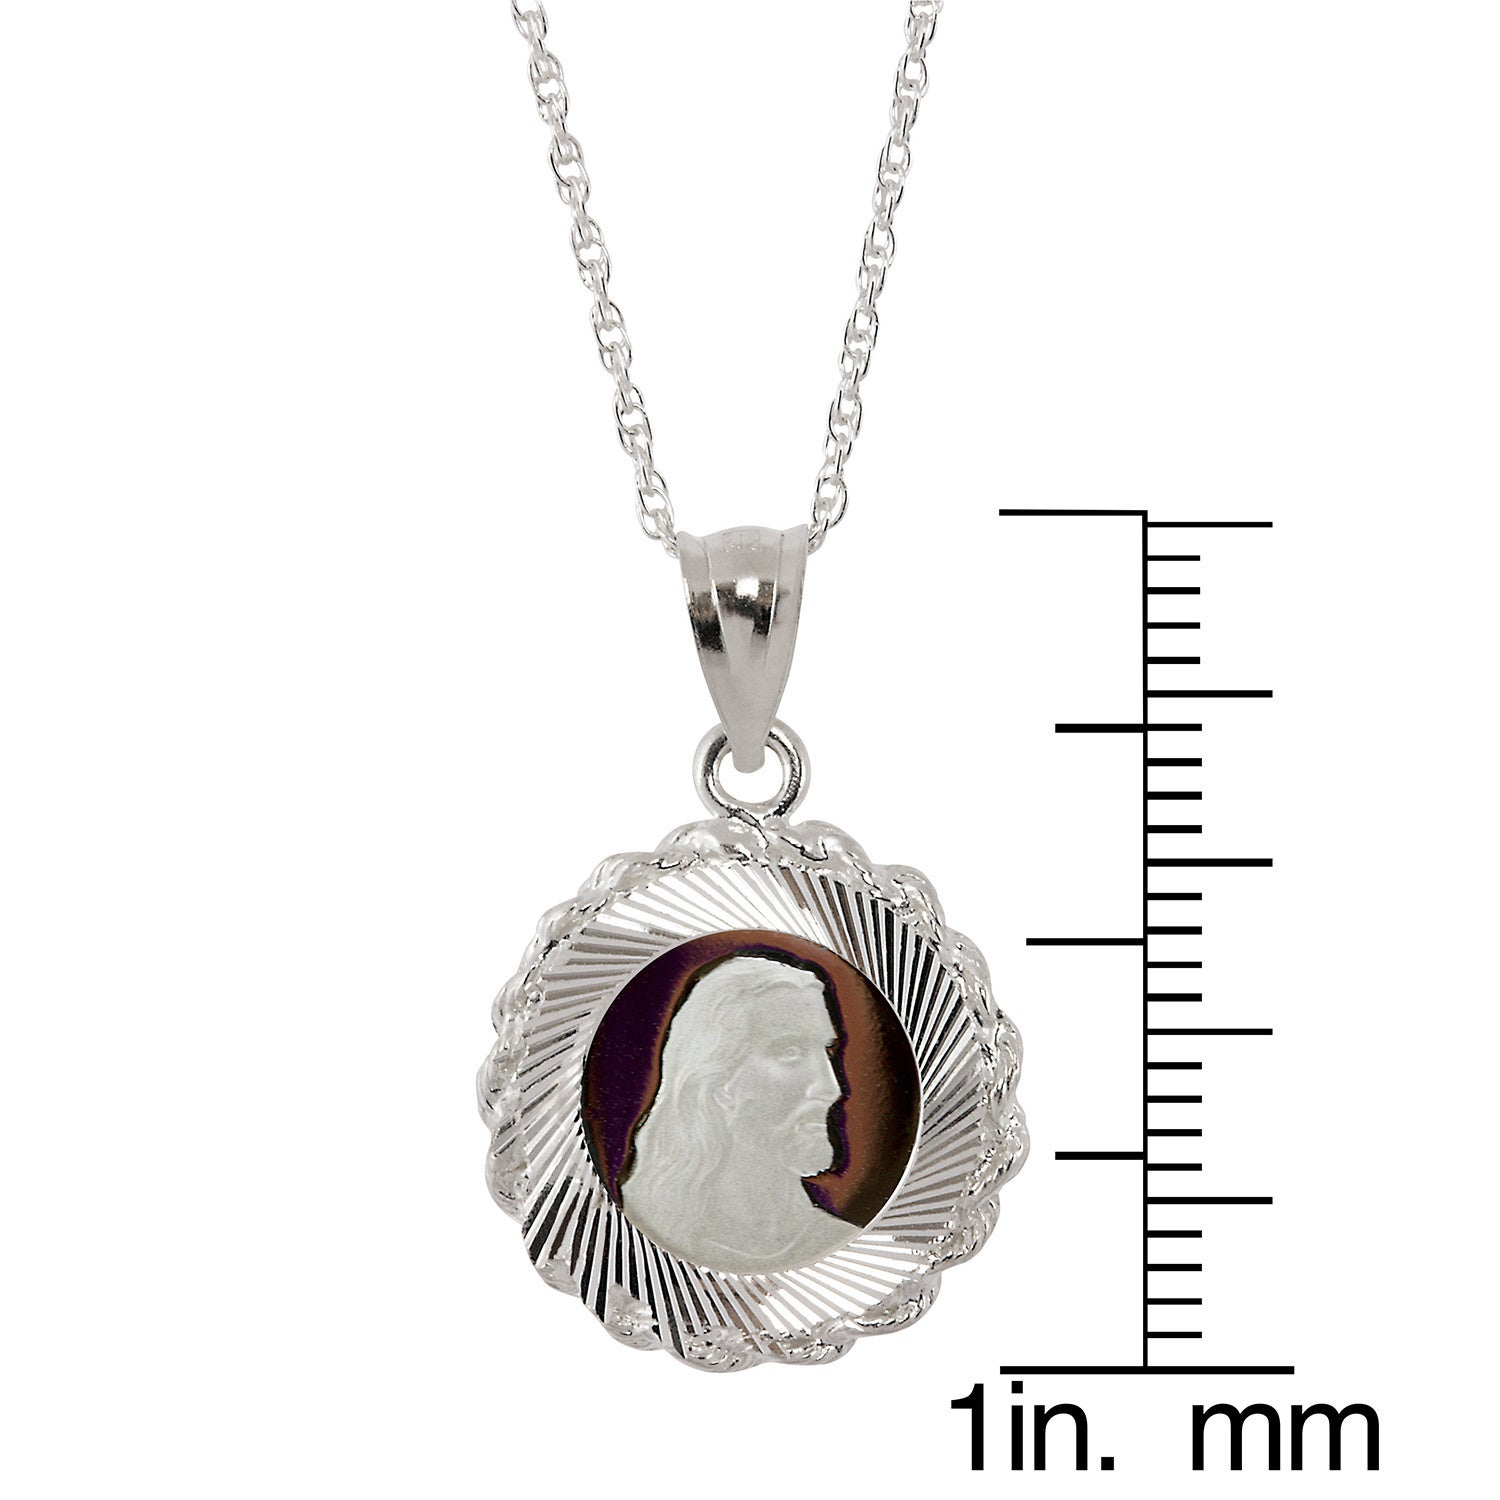 shop gallery necklace coin nomad silver img indian jewelry